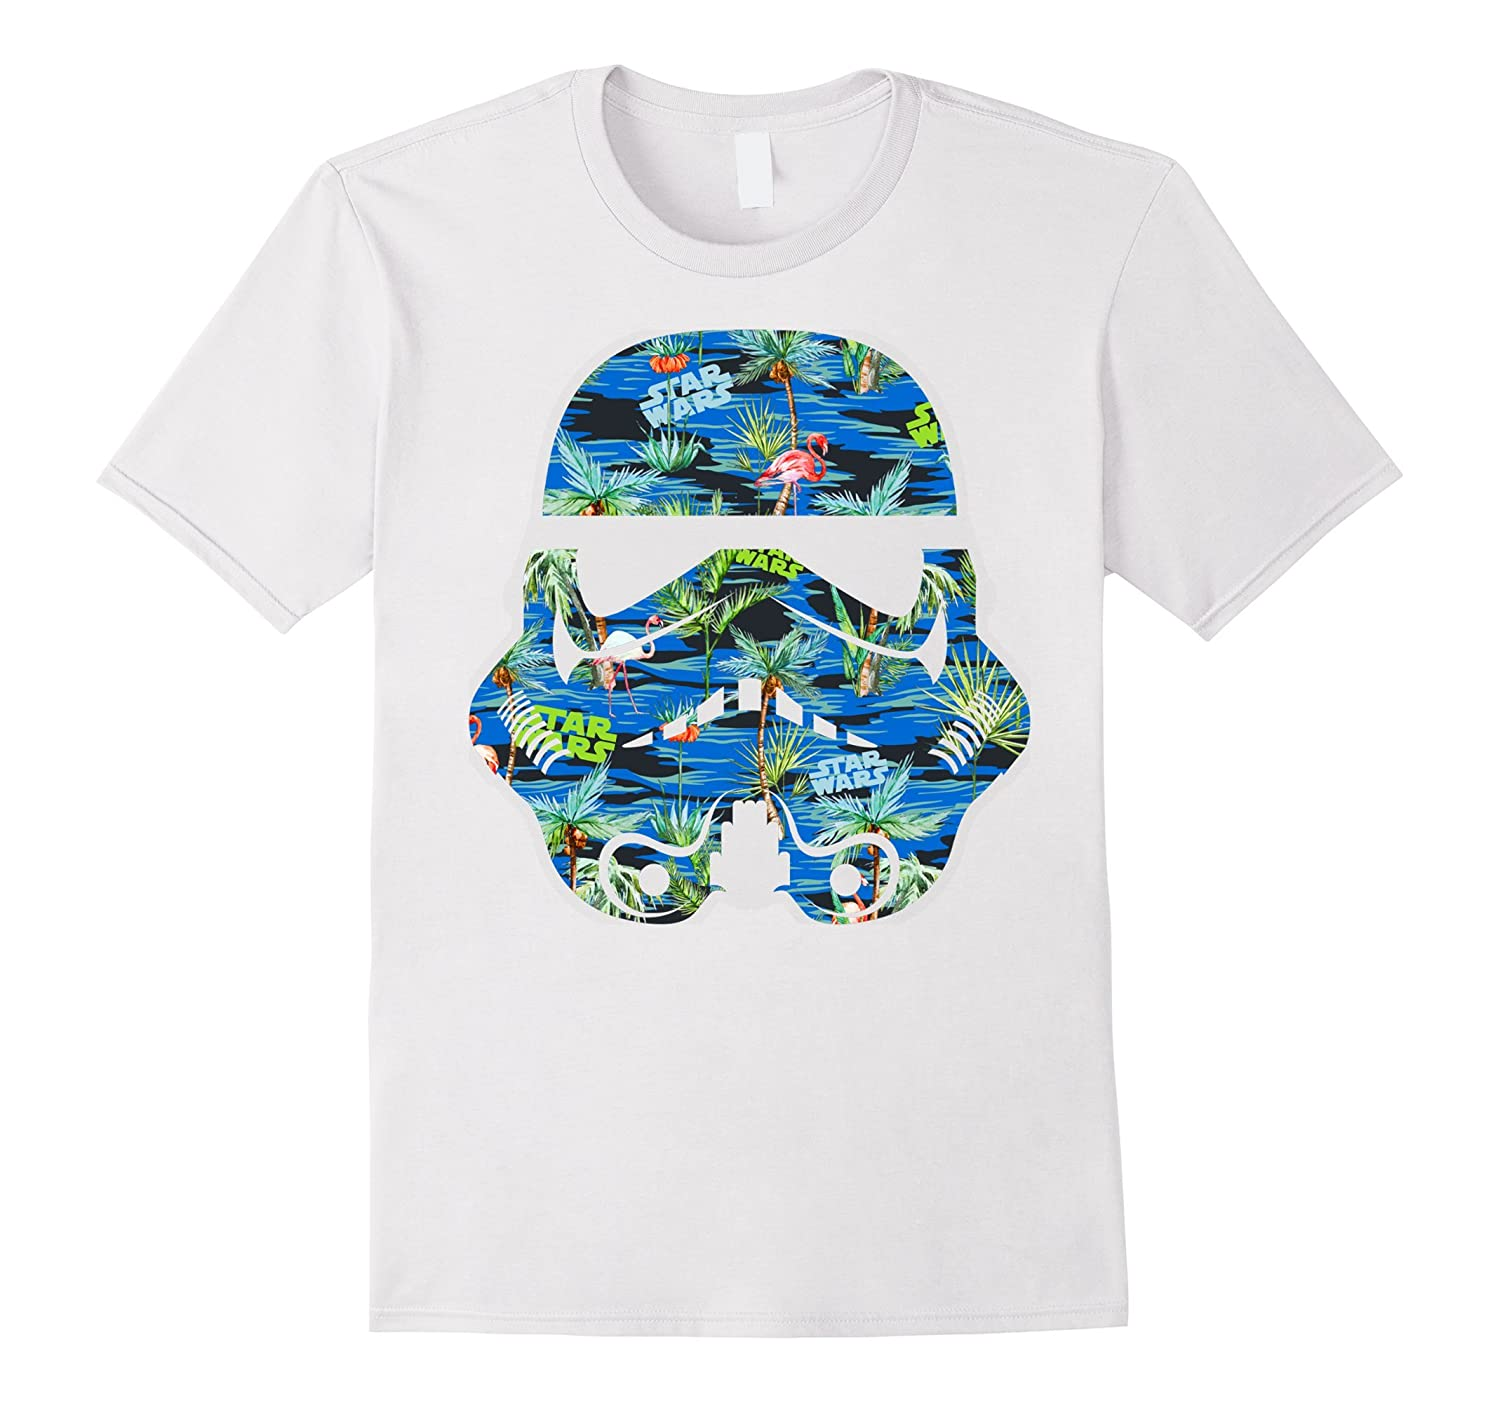 Star wars stormtrooper hawaiian print helmet graphic t for Hawaiian graphic t shirts